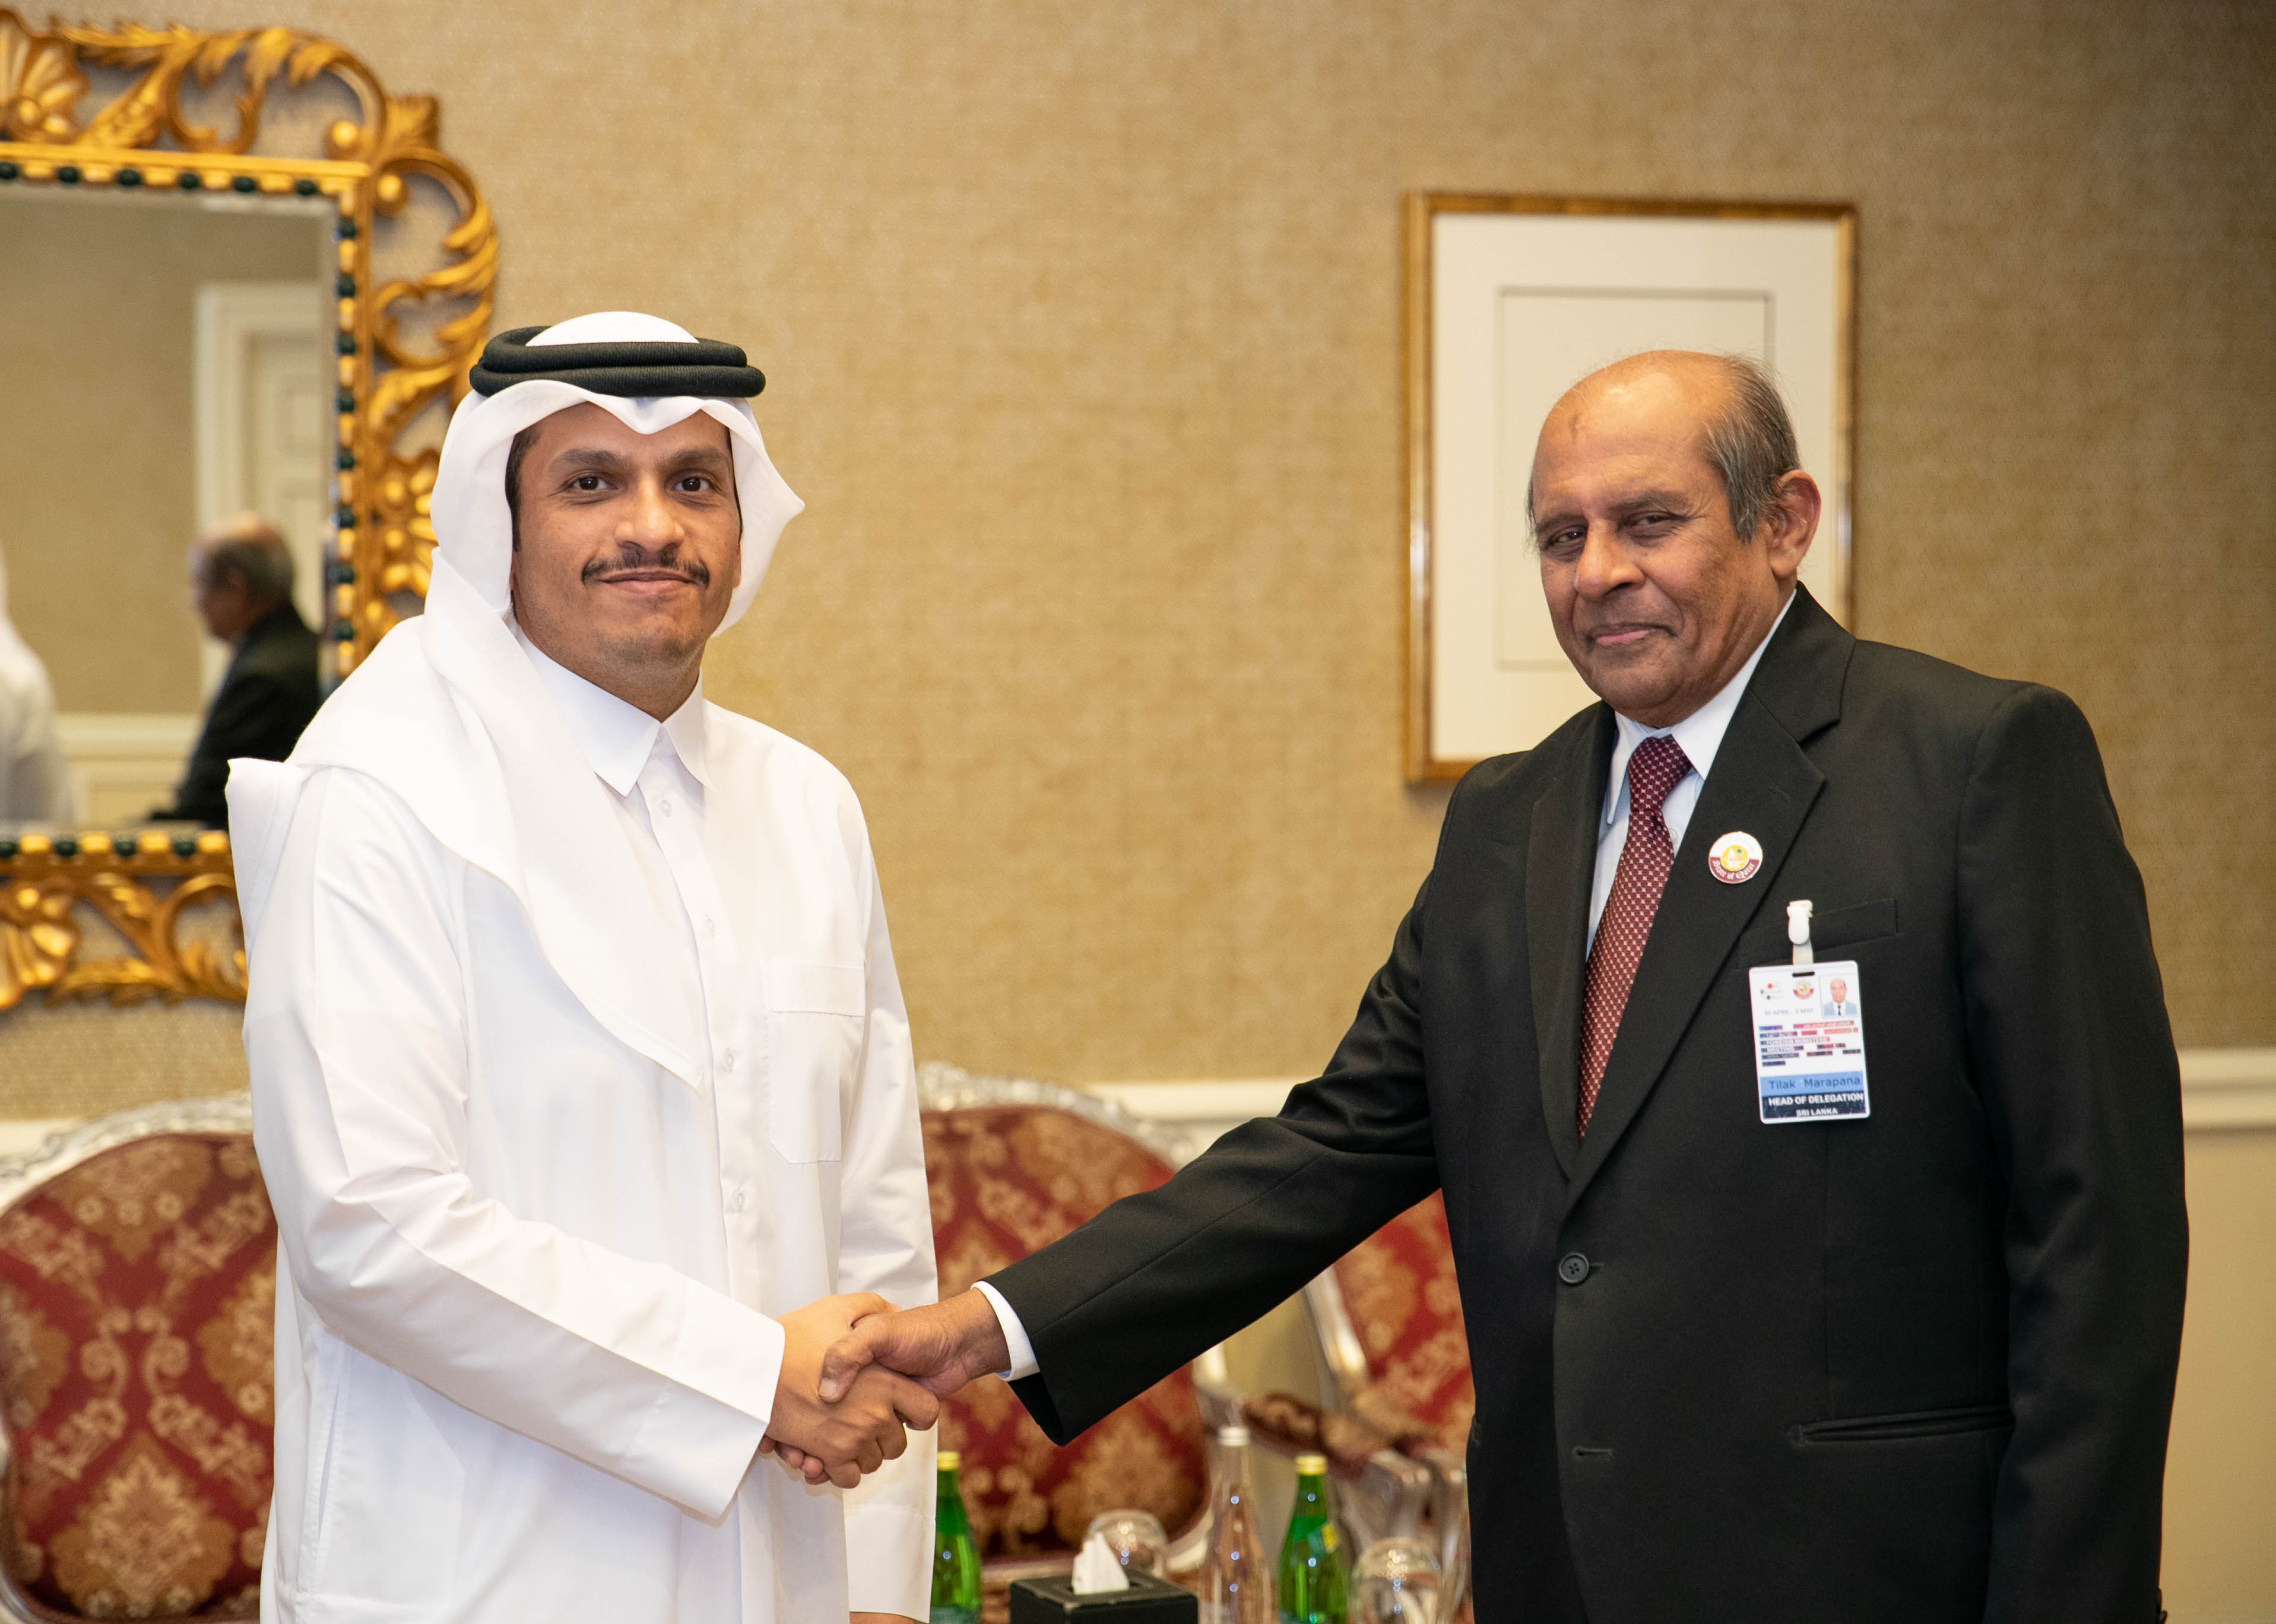 1. Bilateral Meeting with H.E. Sheikh Mohammed bin Abdulrahman bin Jassim Al Thani the Deputy Prime Minister and Minister of Foreign Affairs